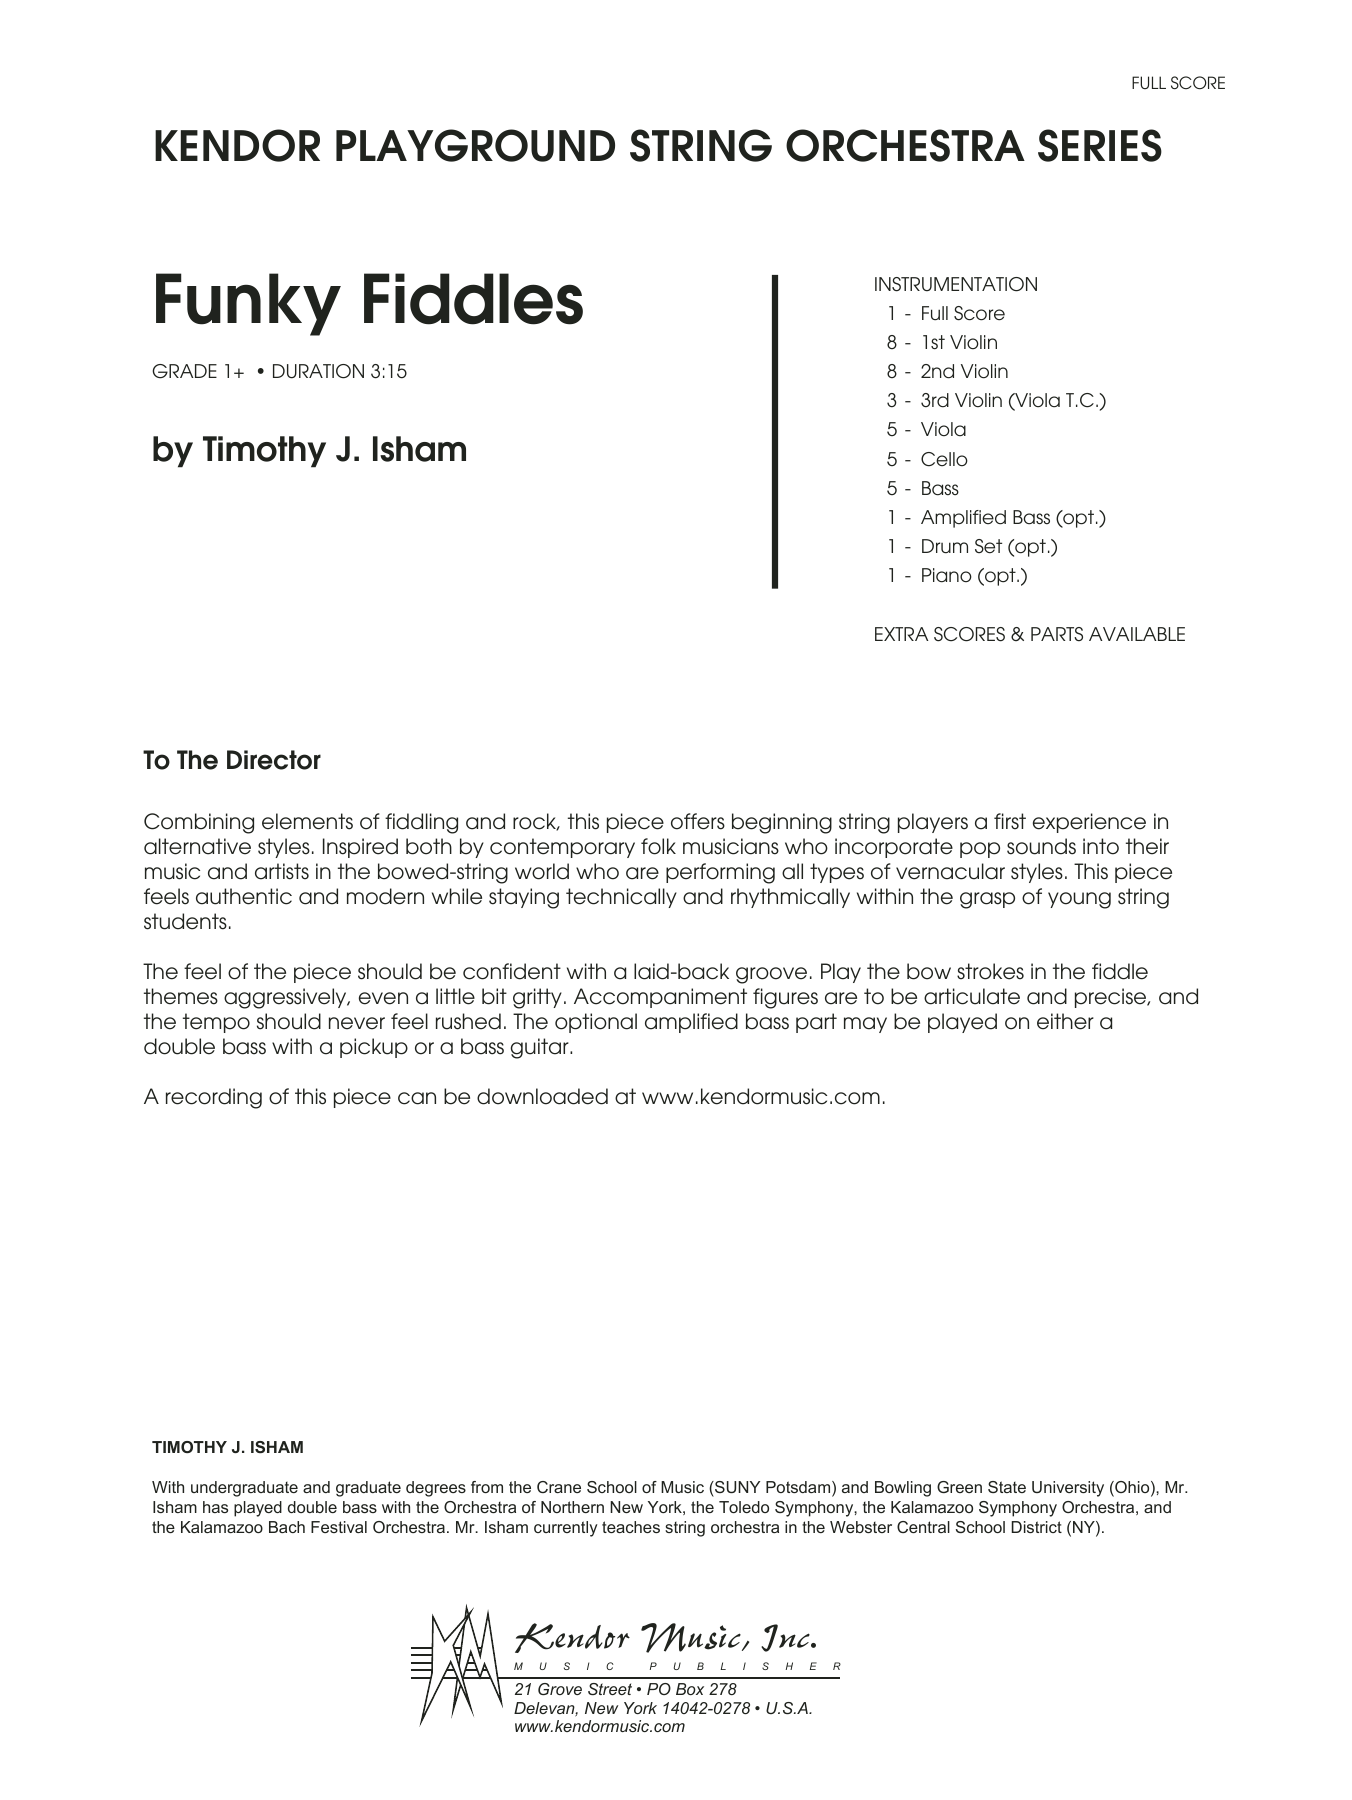 Funky Fiddles - Full Score